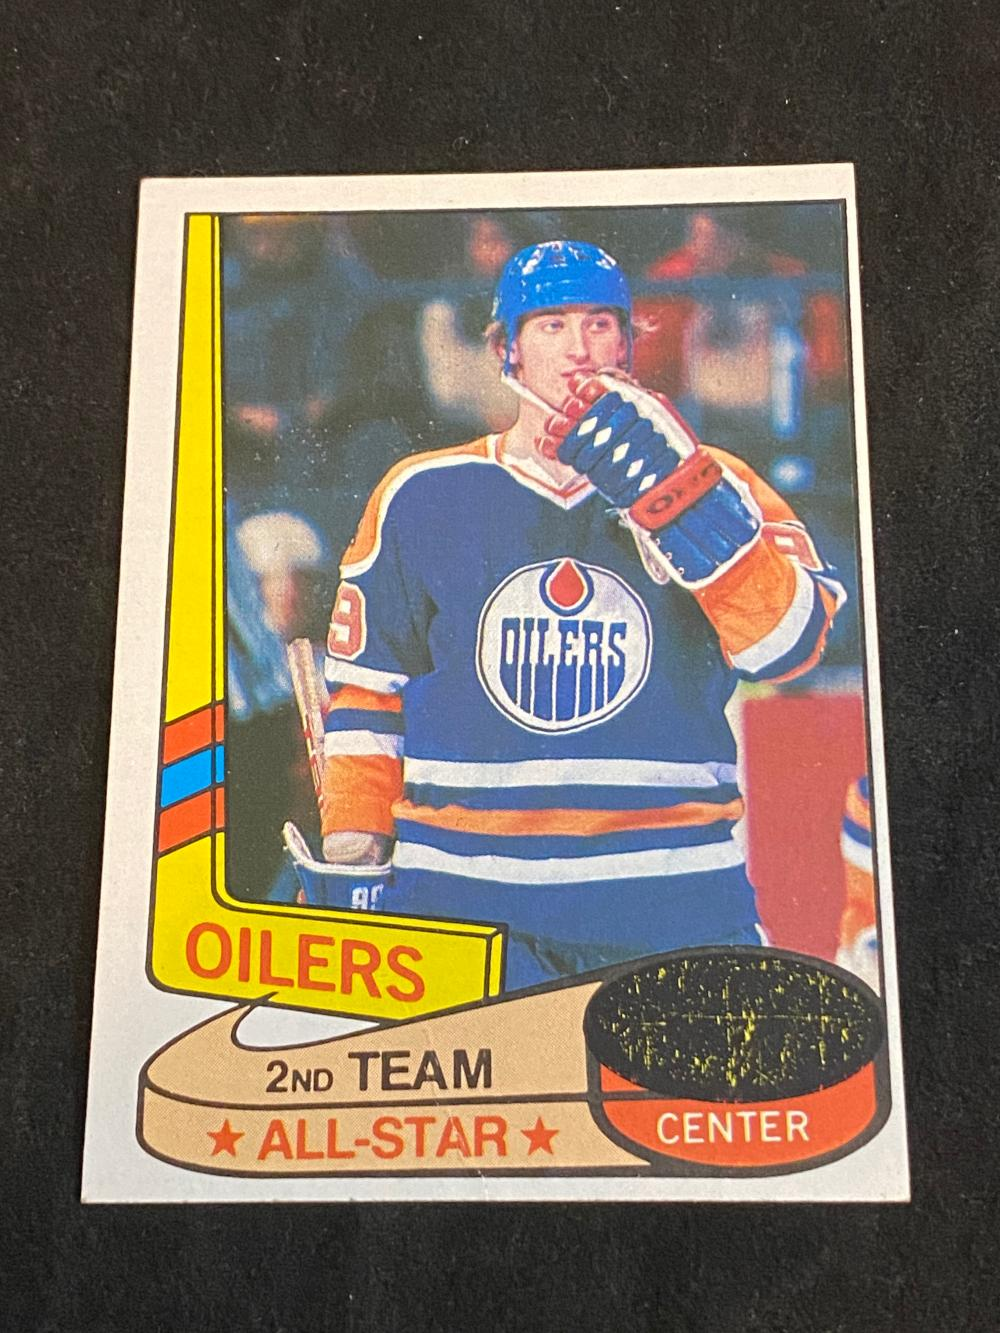 (NM) Unscratched 1980-81 Topps All Star Wayne Gretzky #87 Hockey Card